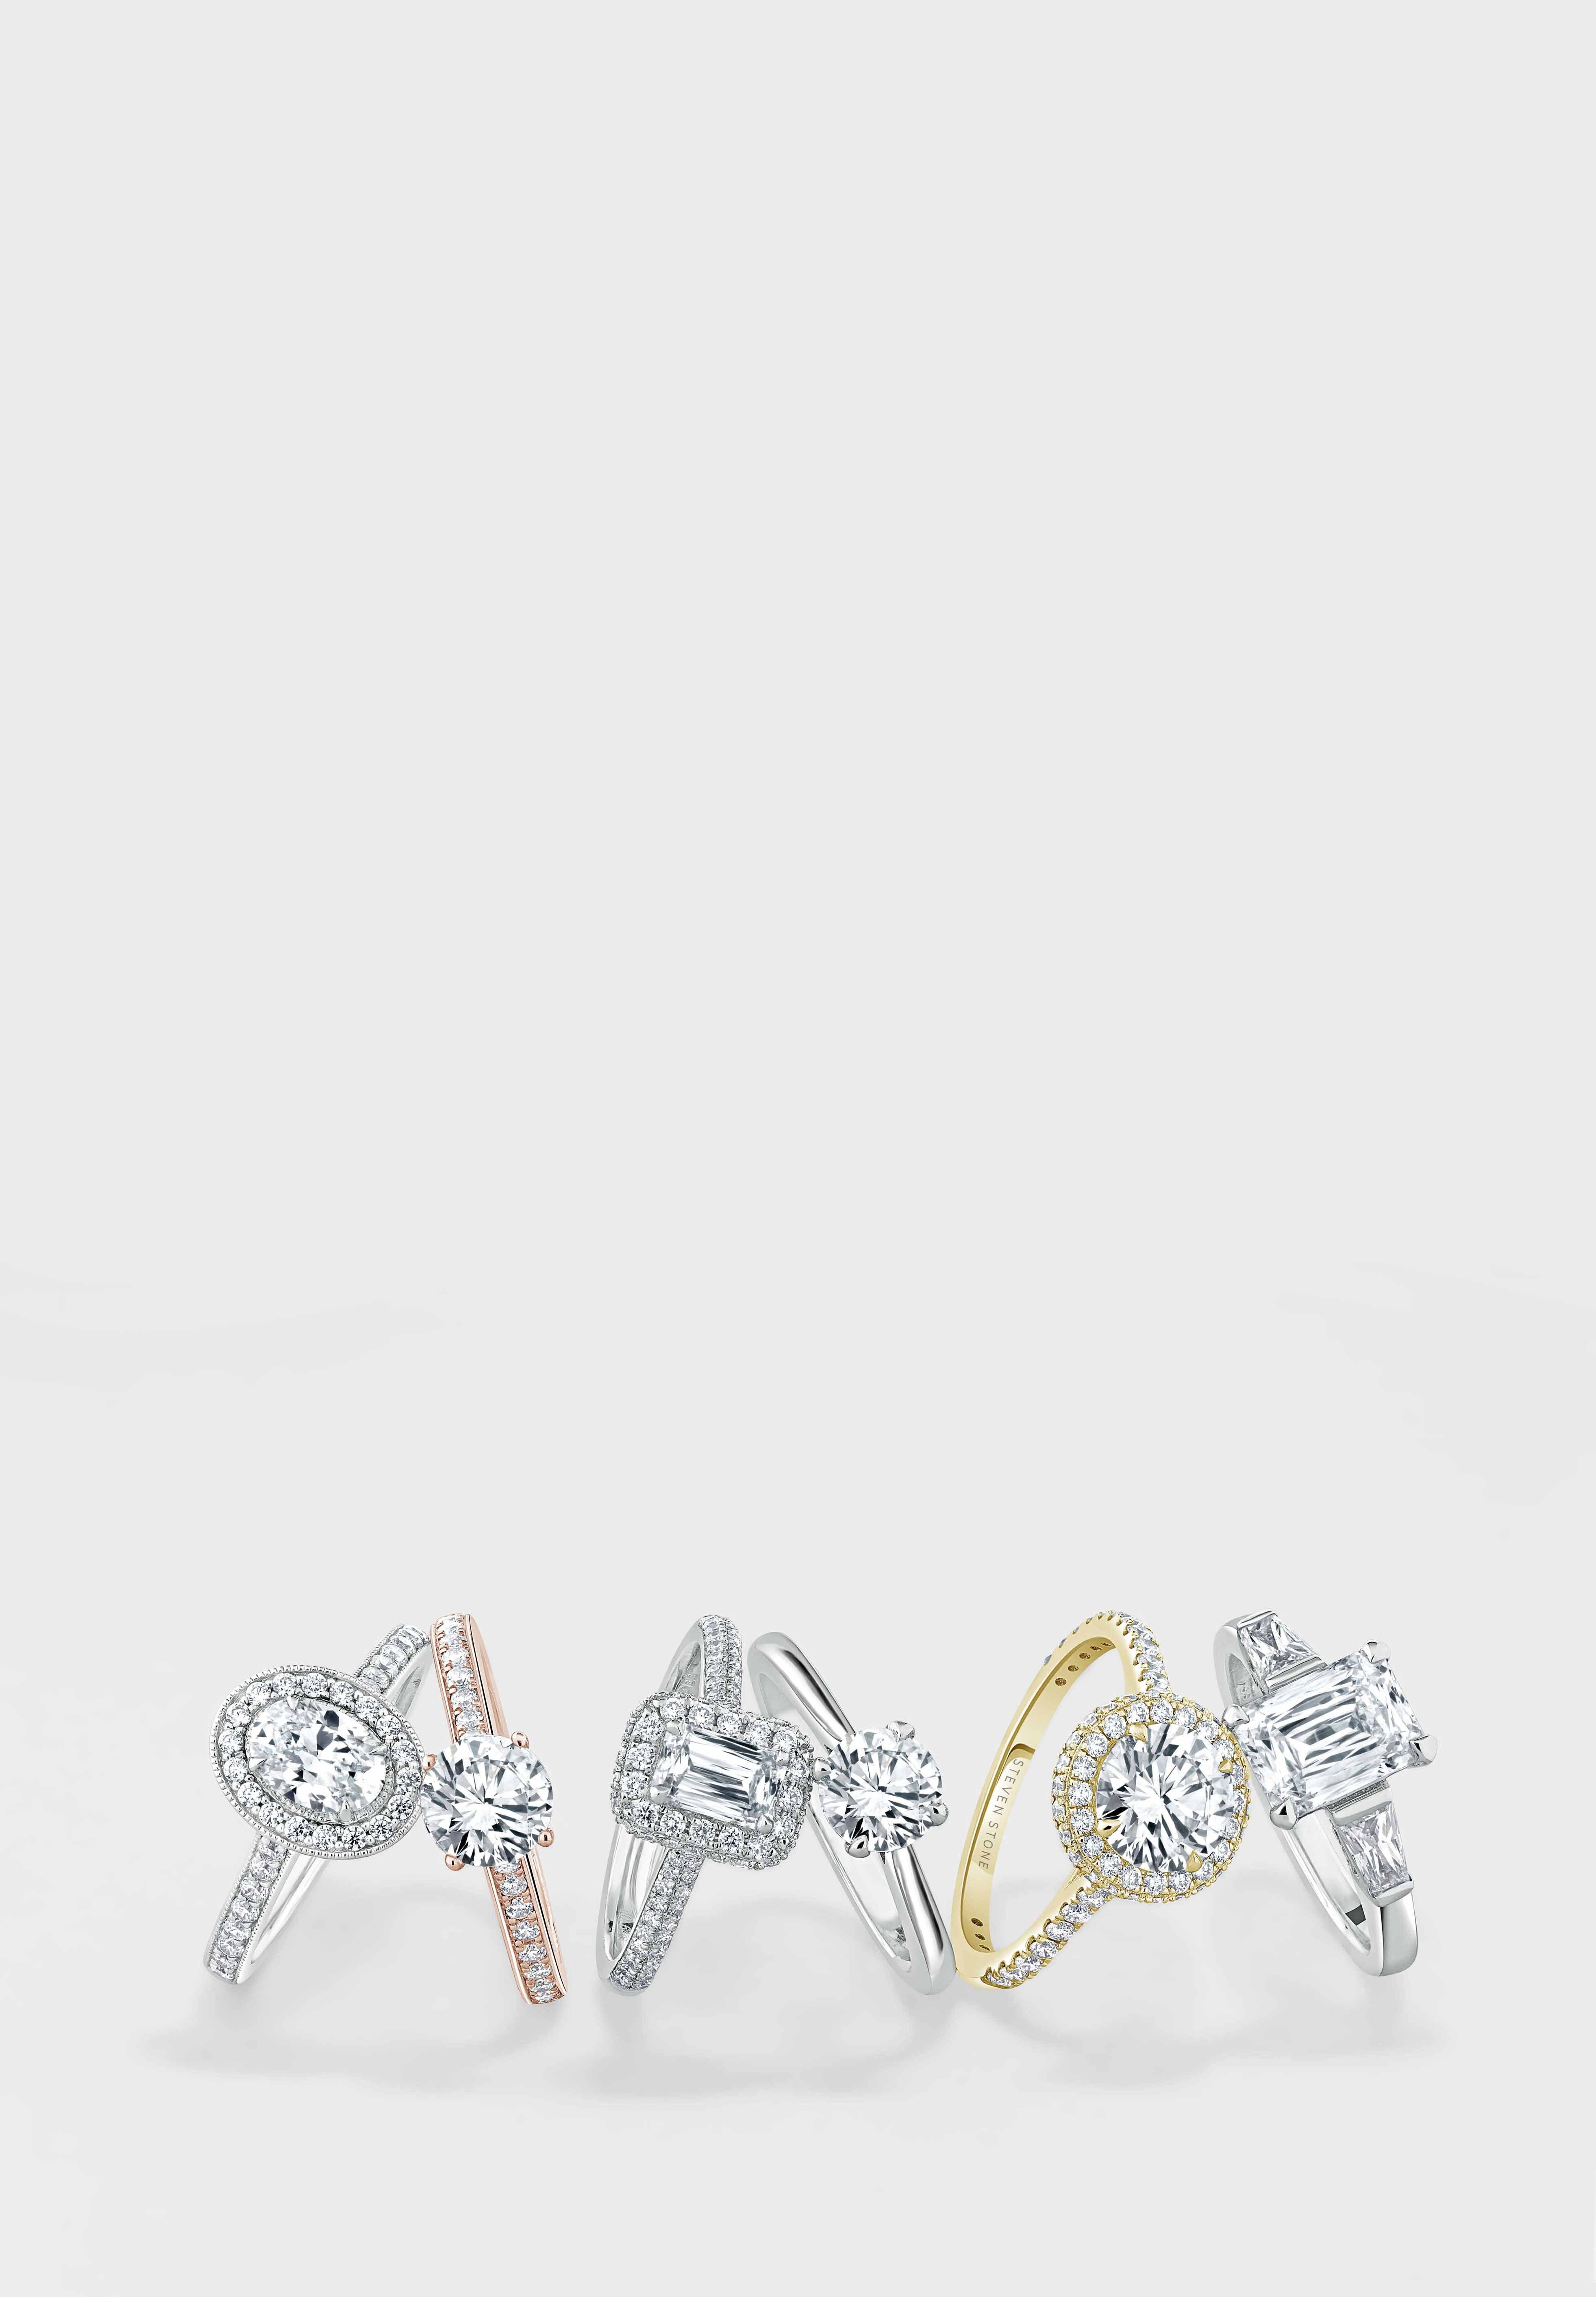 Yellow Gold Princess Cut Engagement Rings - Steven Stone